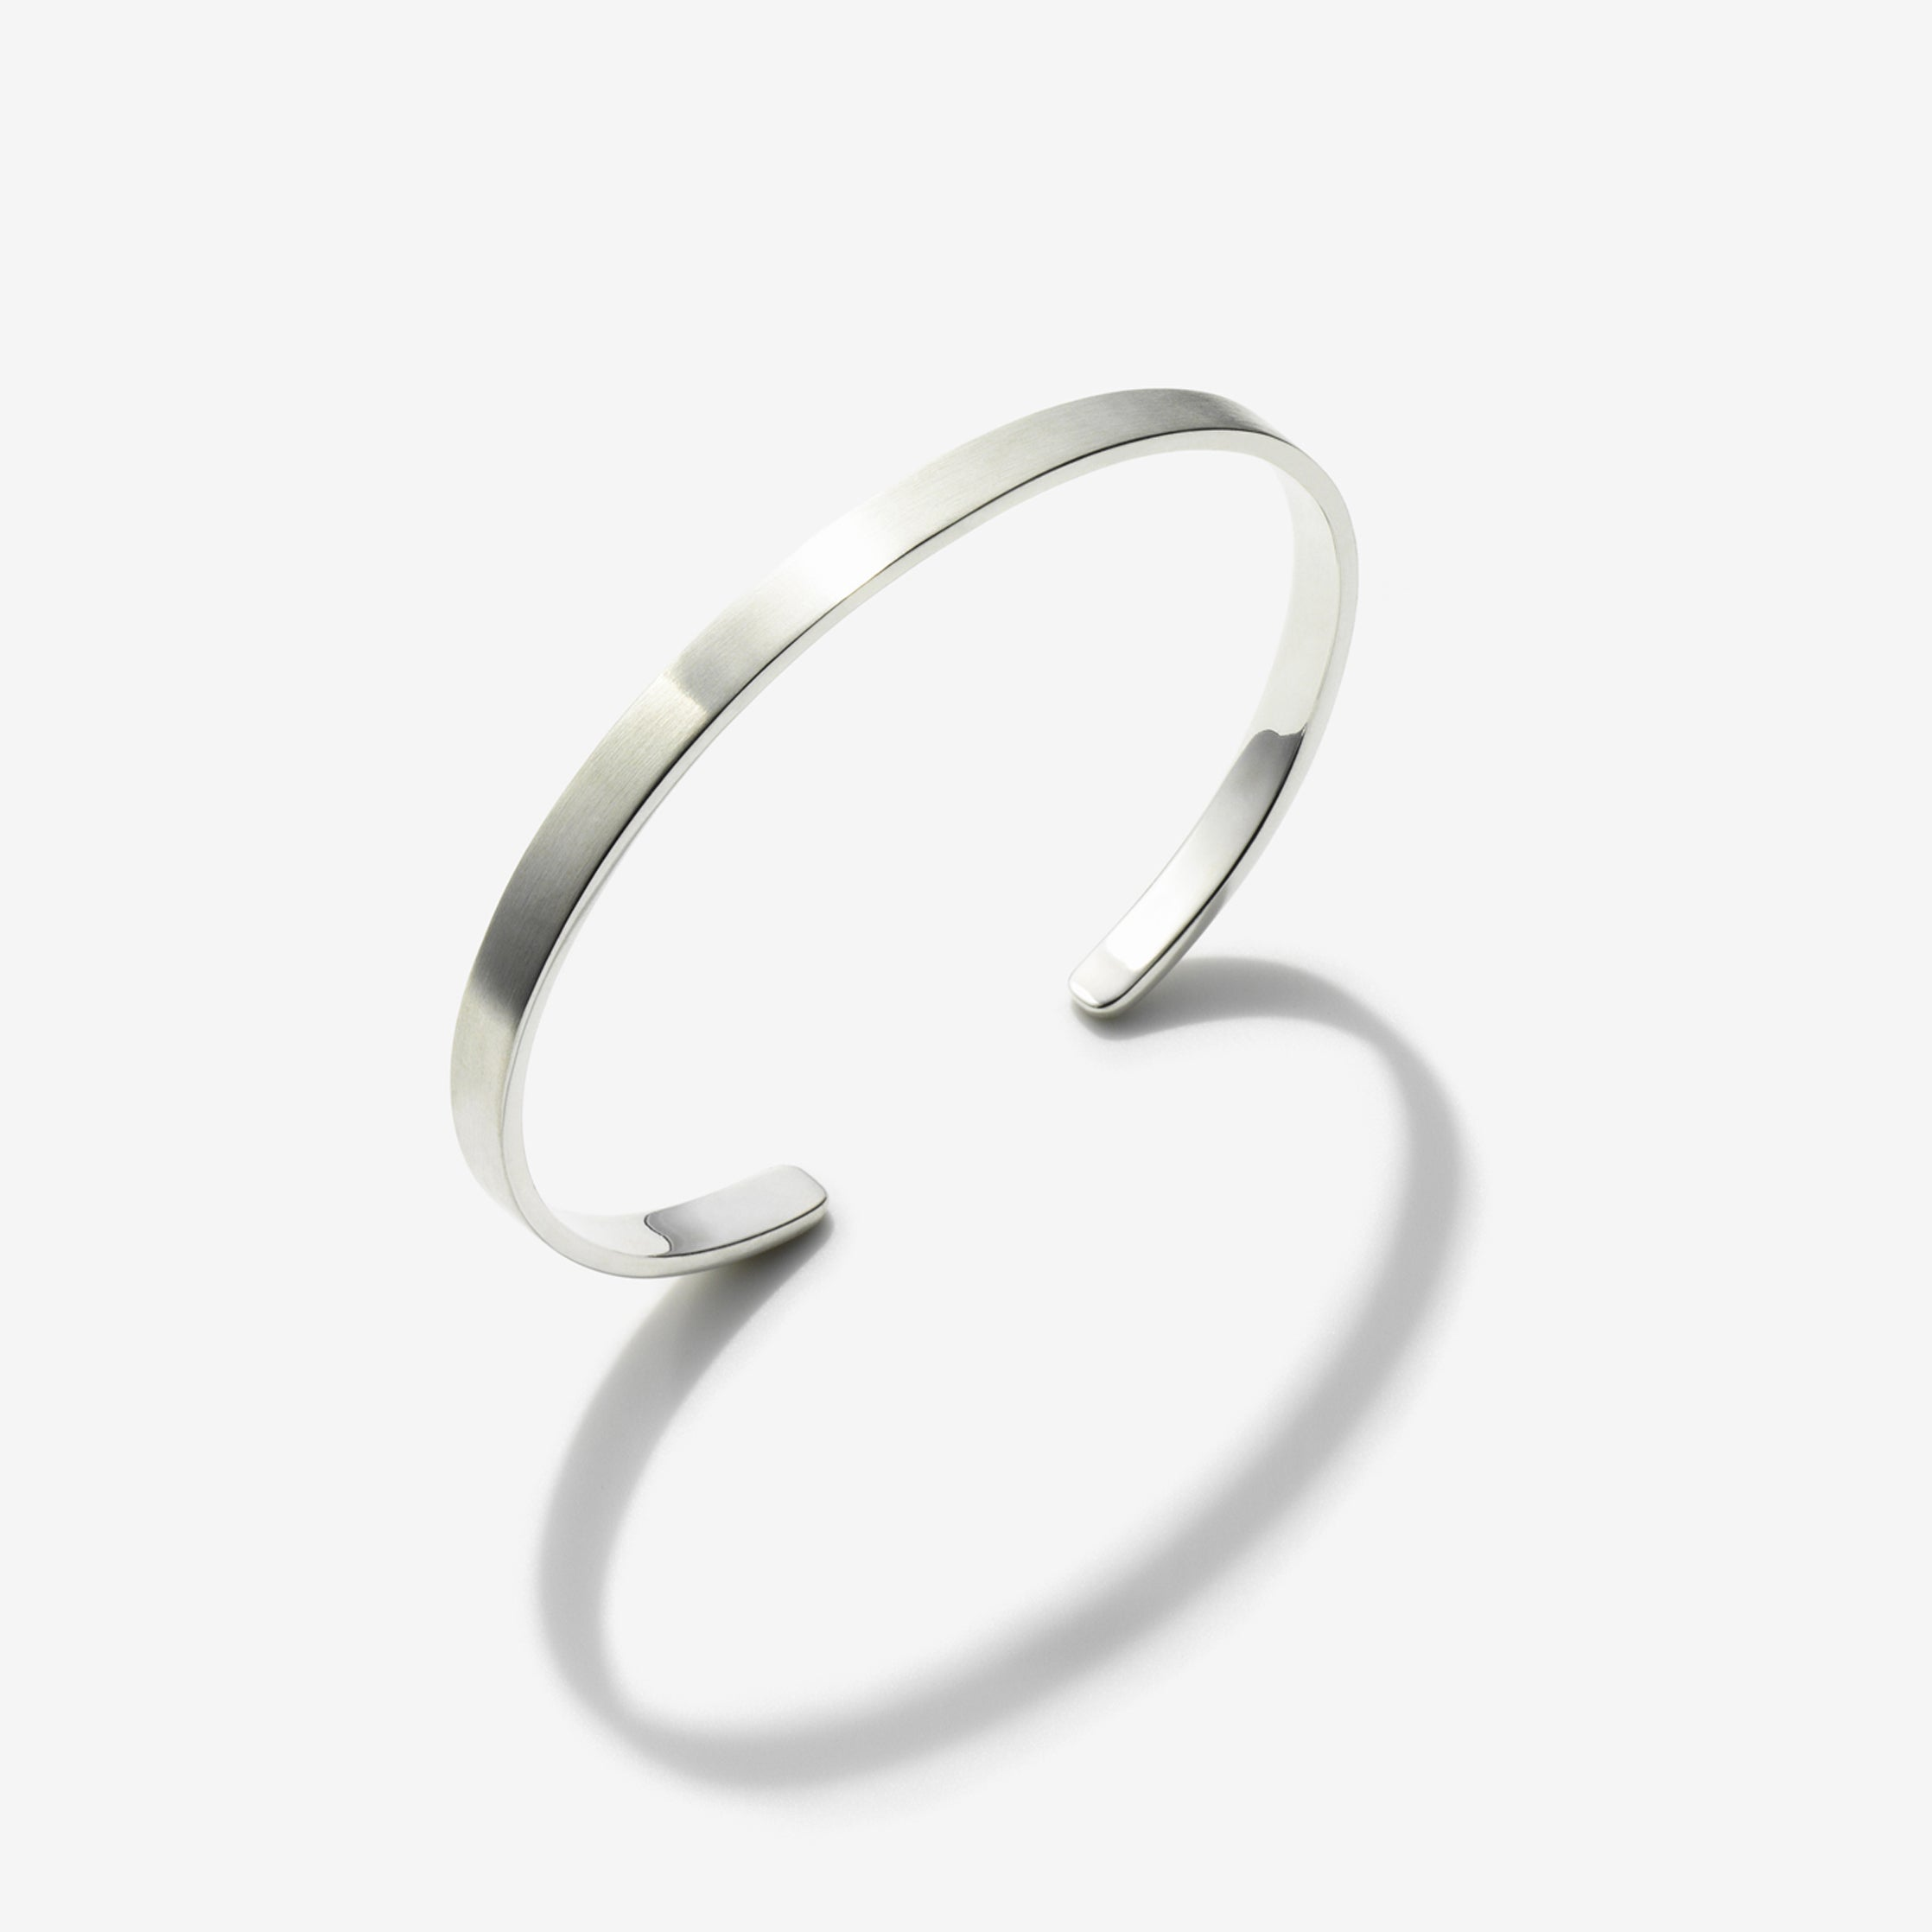 POLISHED STERLING SILVER CUFF